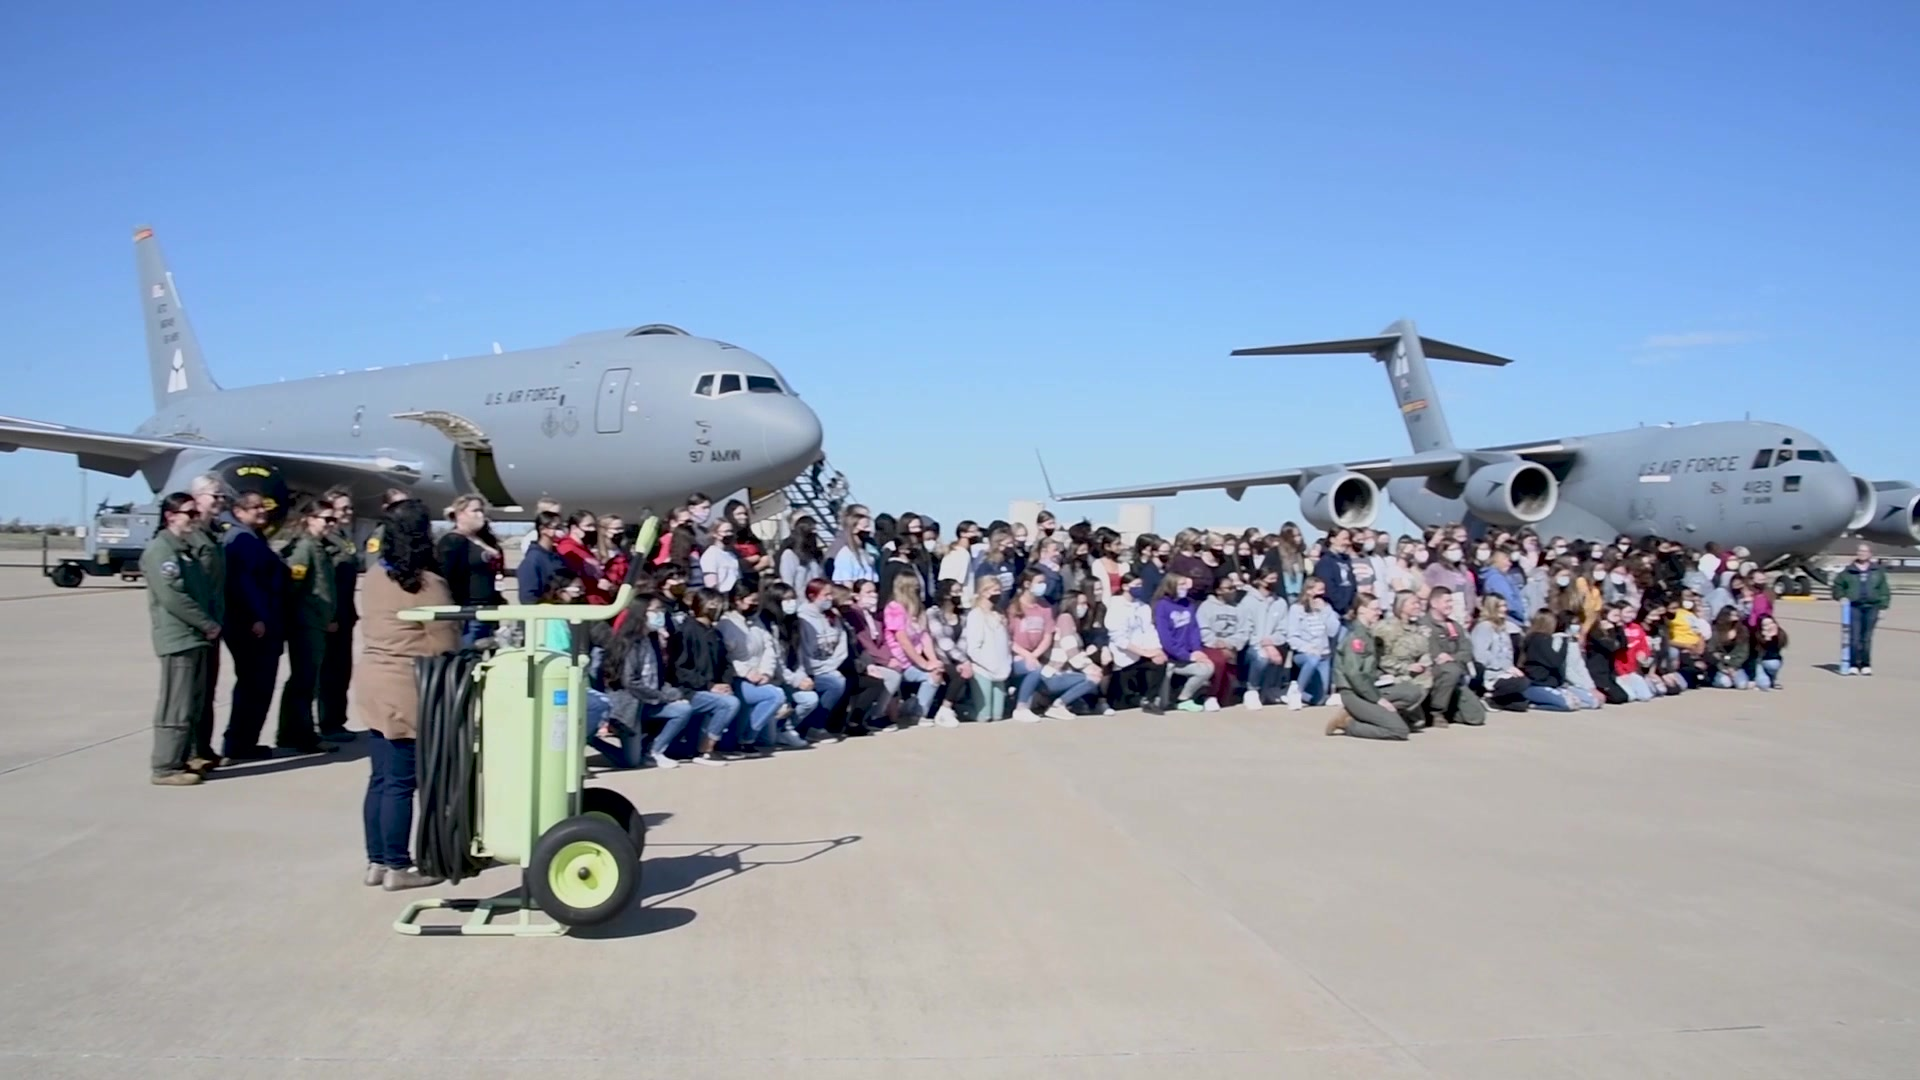 Female warriors from around the Air force spoke about the significance of women's history month. In addition to the wing's all-female flight, Airmen from Dyess, Holloman, Laughlin, Vance, and Sheppard Air Force Base joined the Mighty 97th to showcase 15 aircraft and celebrate airpower with 200 local students.